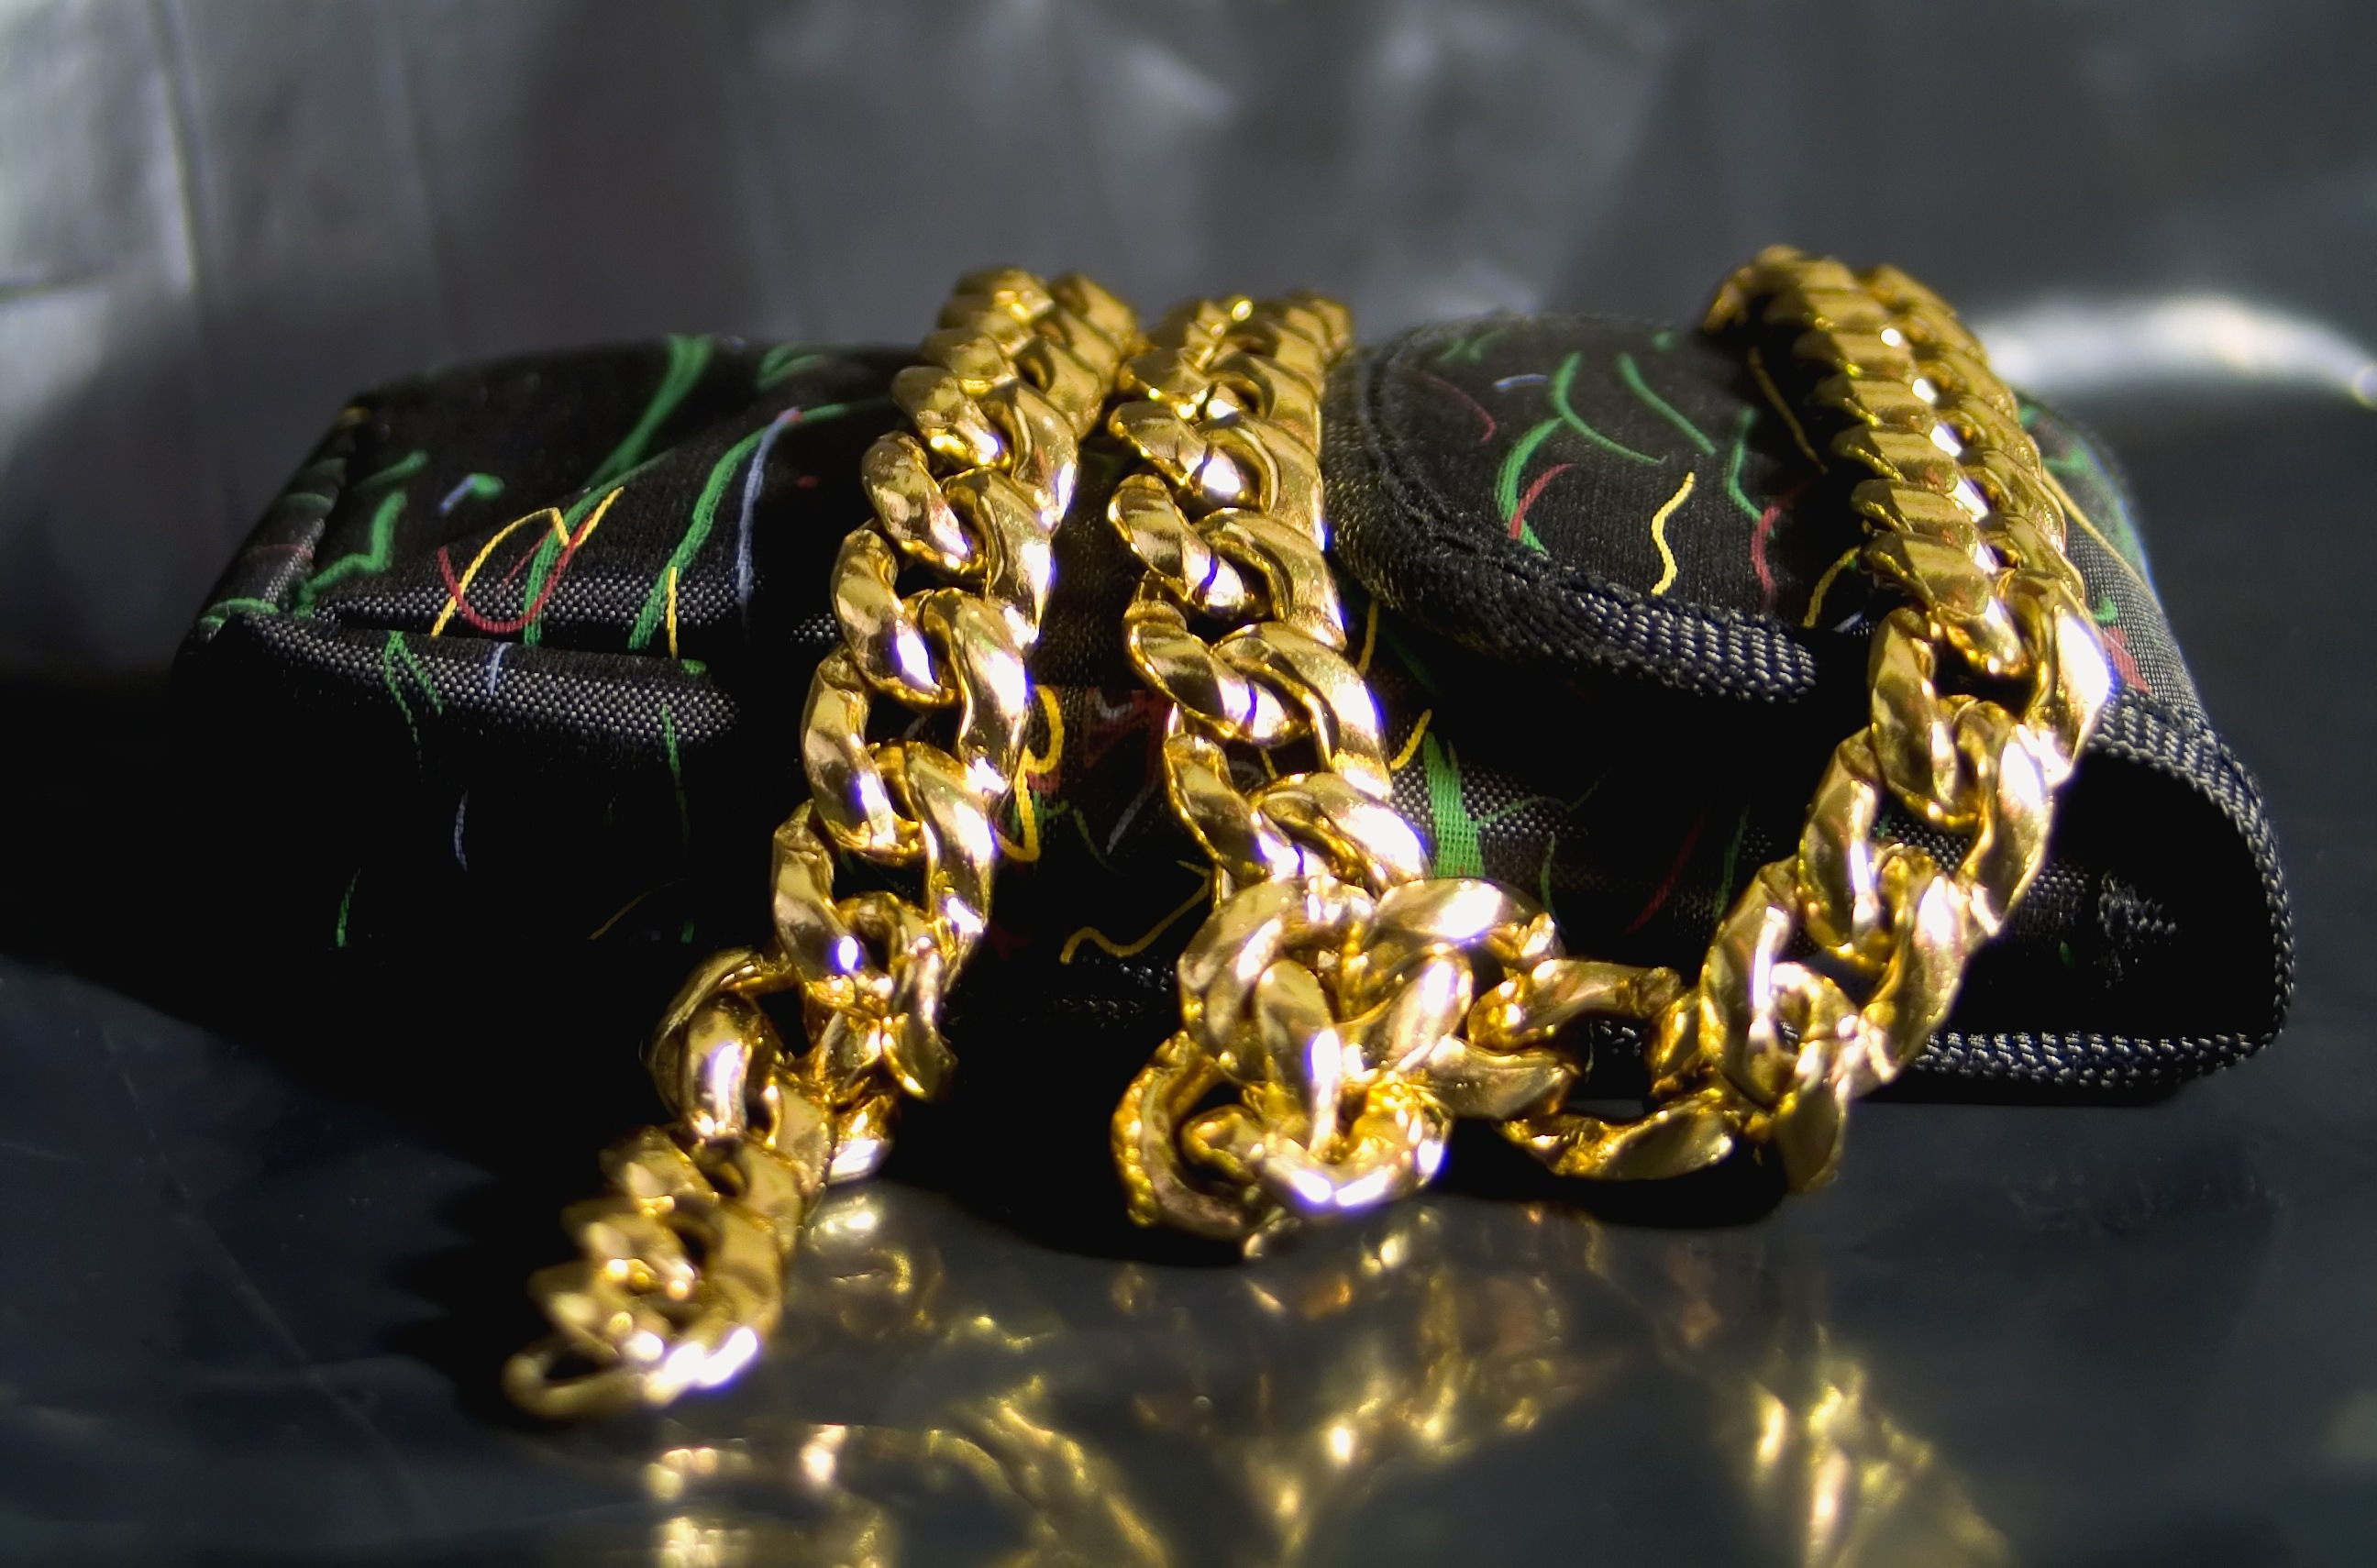 kilo chain by splash link chains z jay if and for yamborghini yellow baller gold expensive ferg ben splashy cuban made asap co